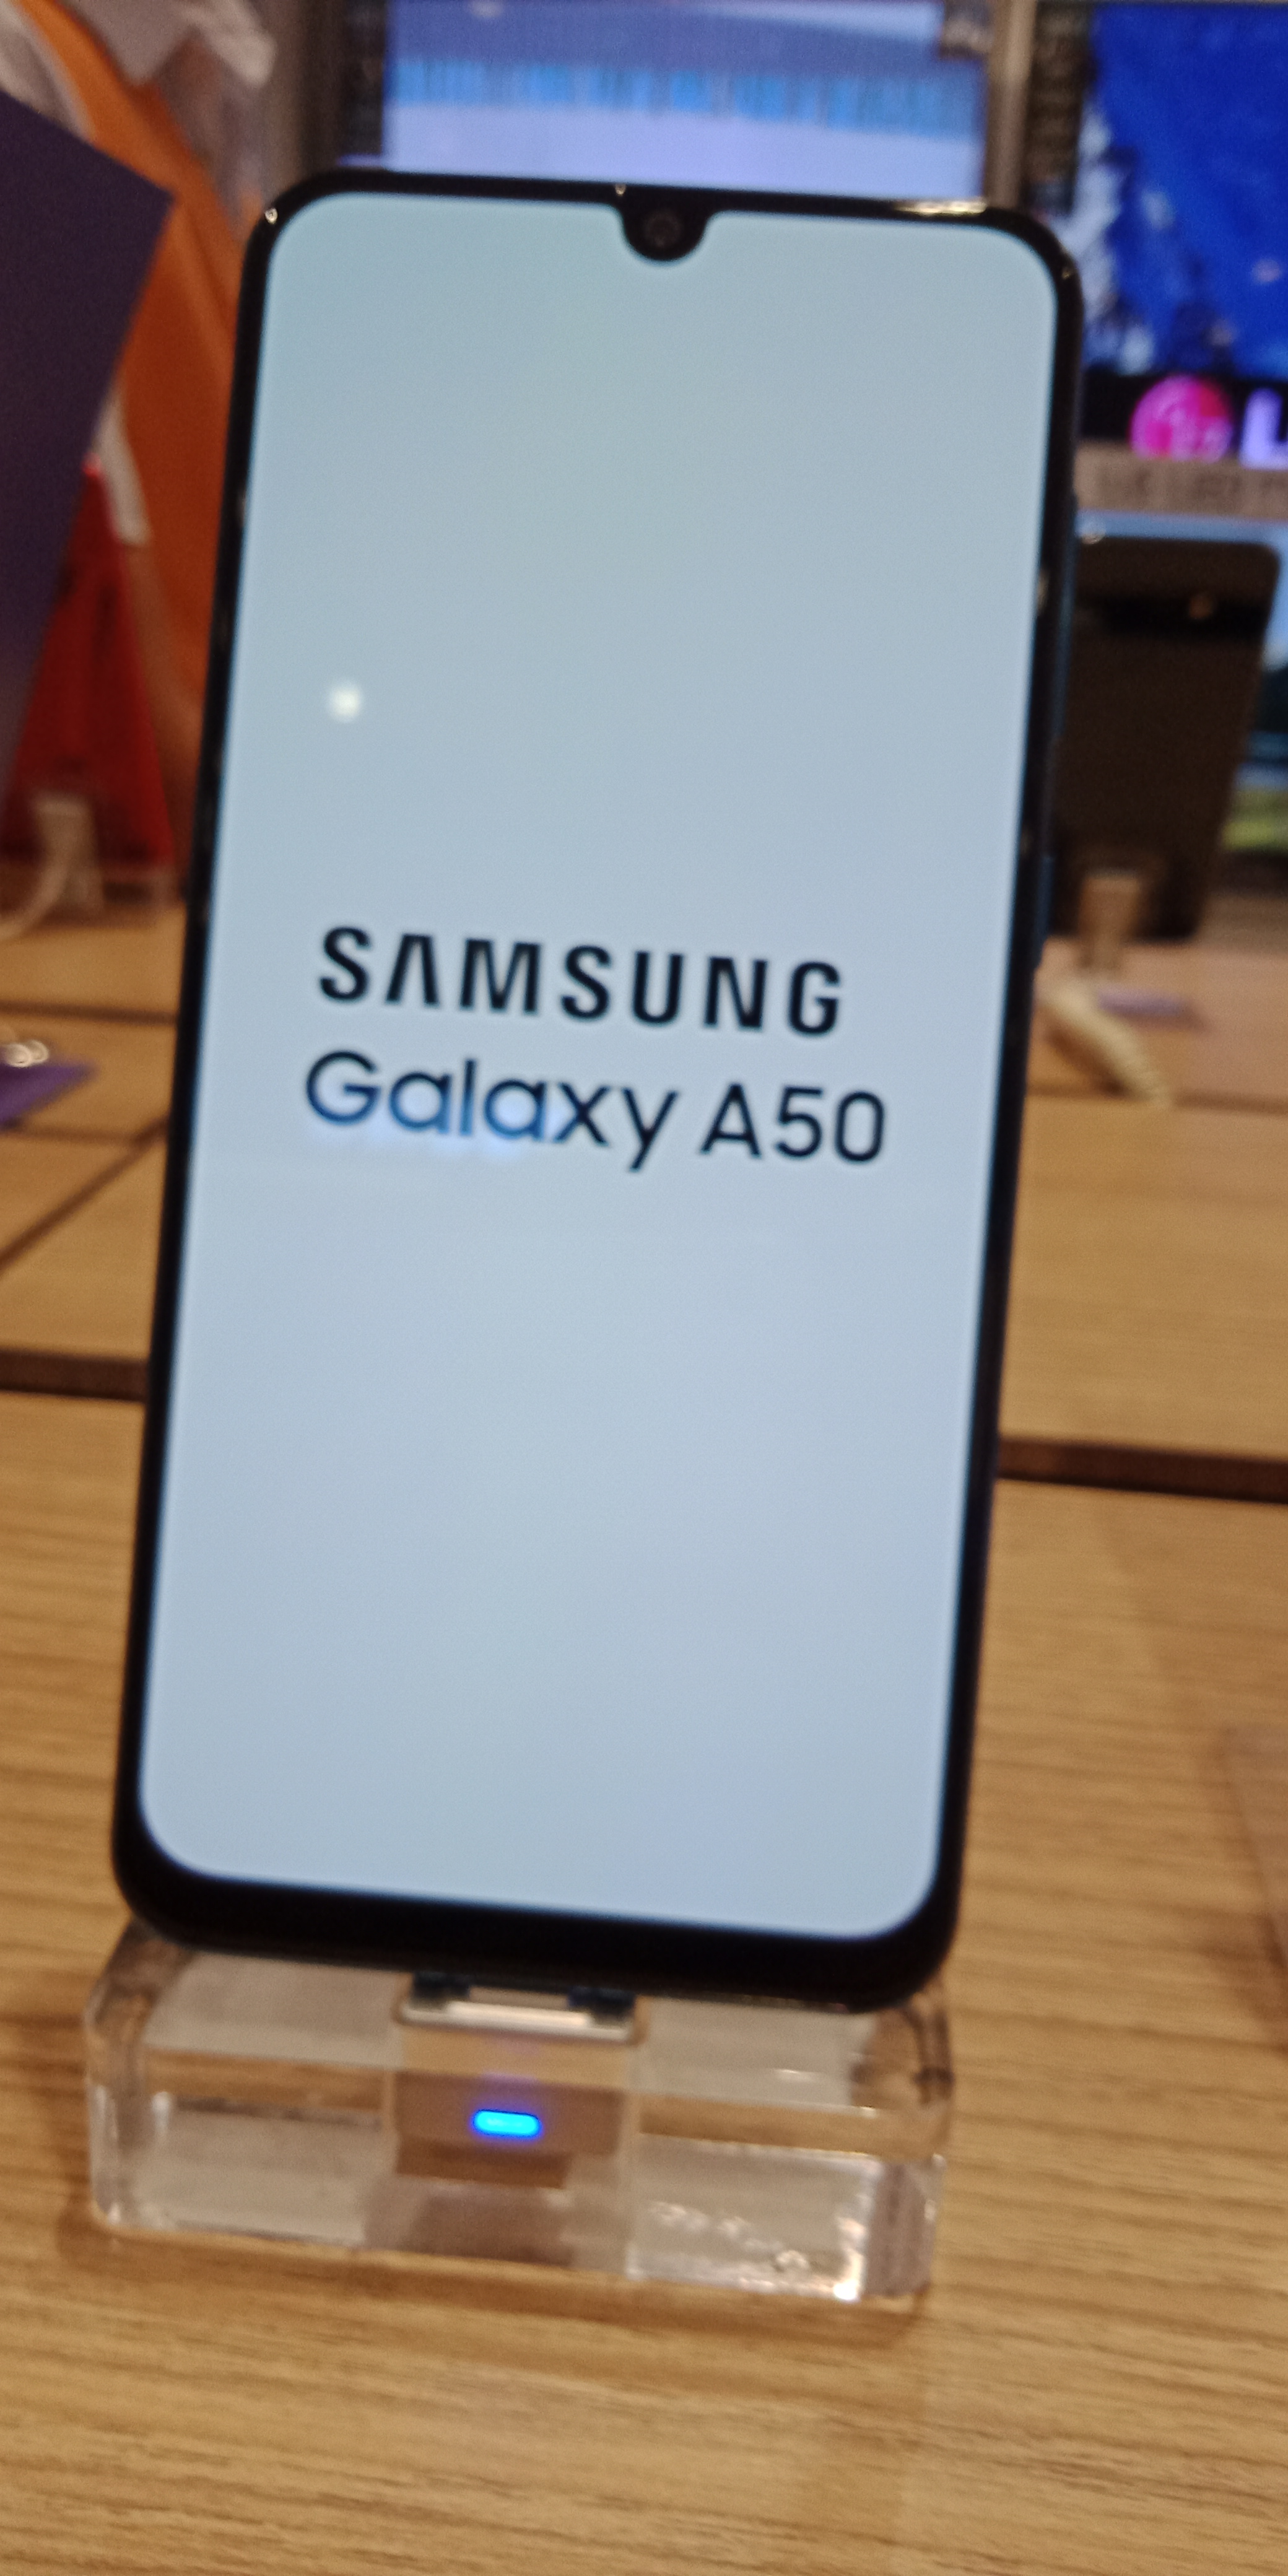 Samsung Galaxy A50 - Wikipedia